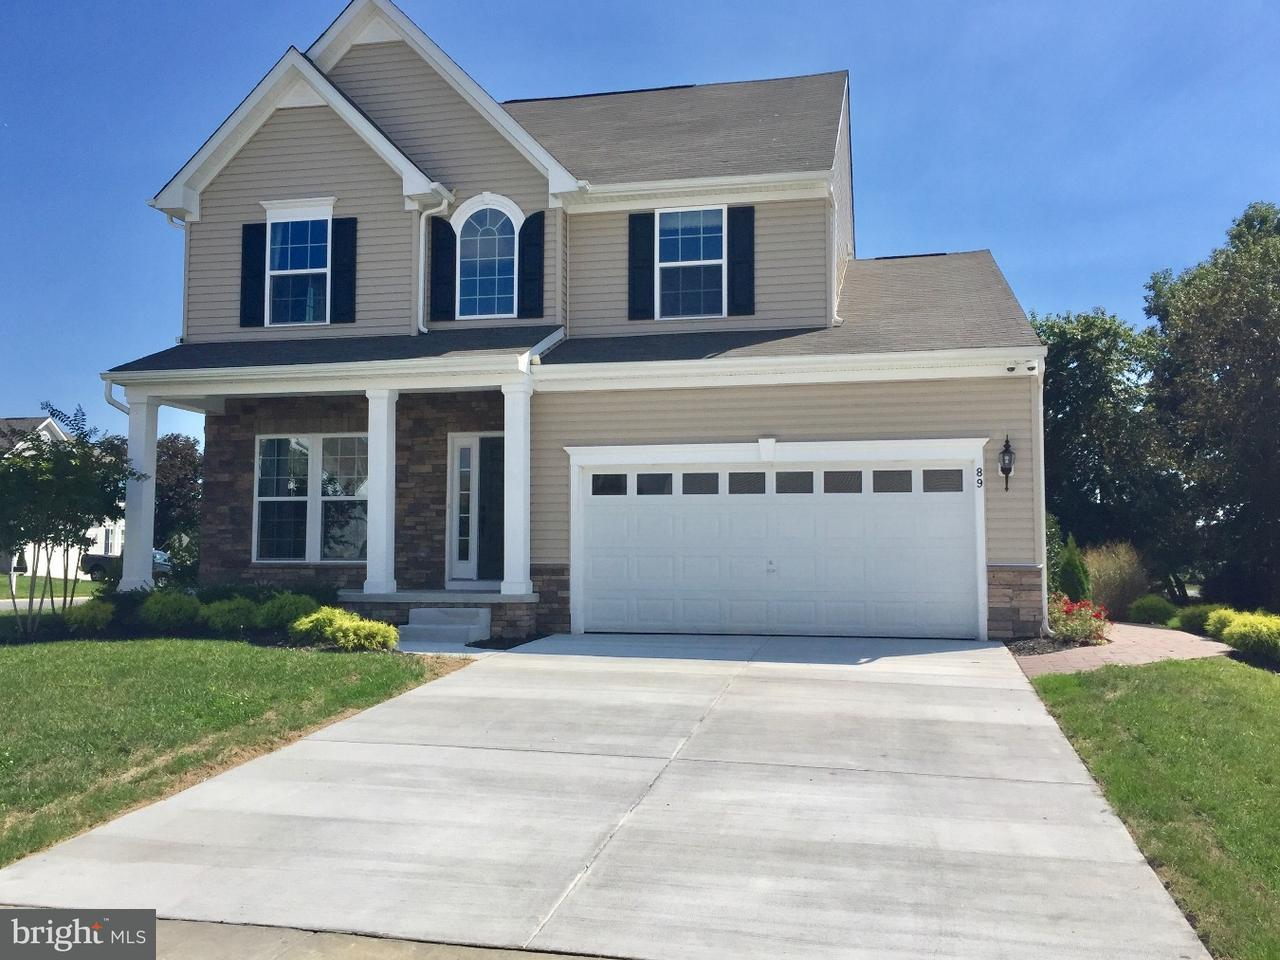 Single Family Home for Rent at 89 BOGGS RUN Dover, Delaware 19904 United States